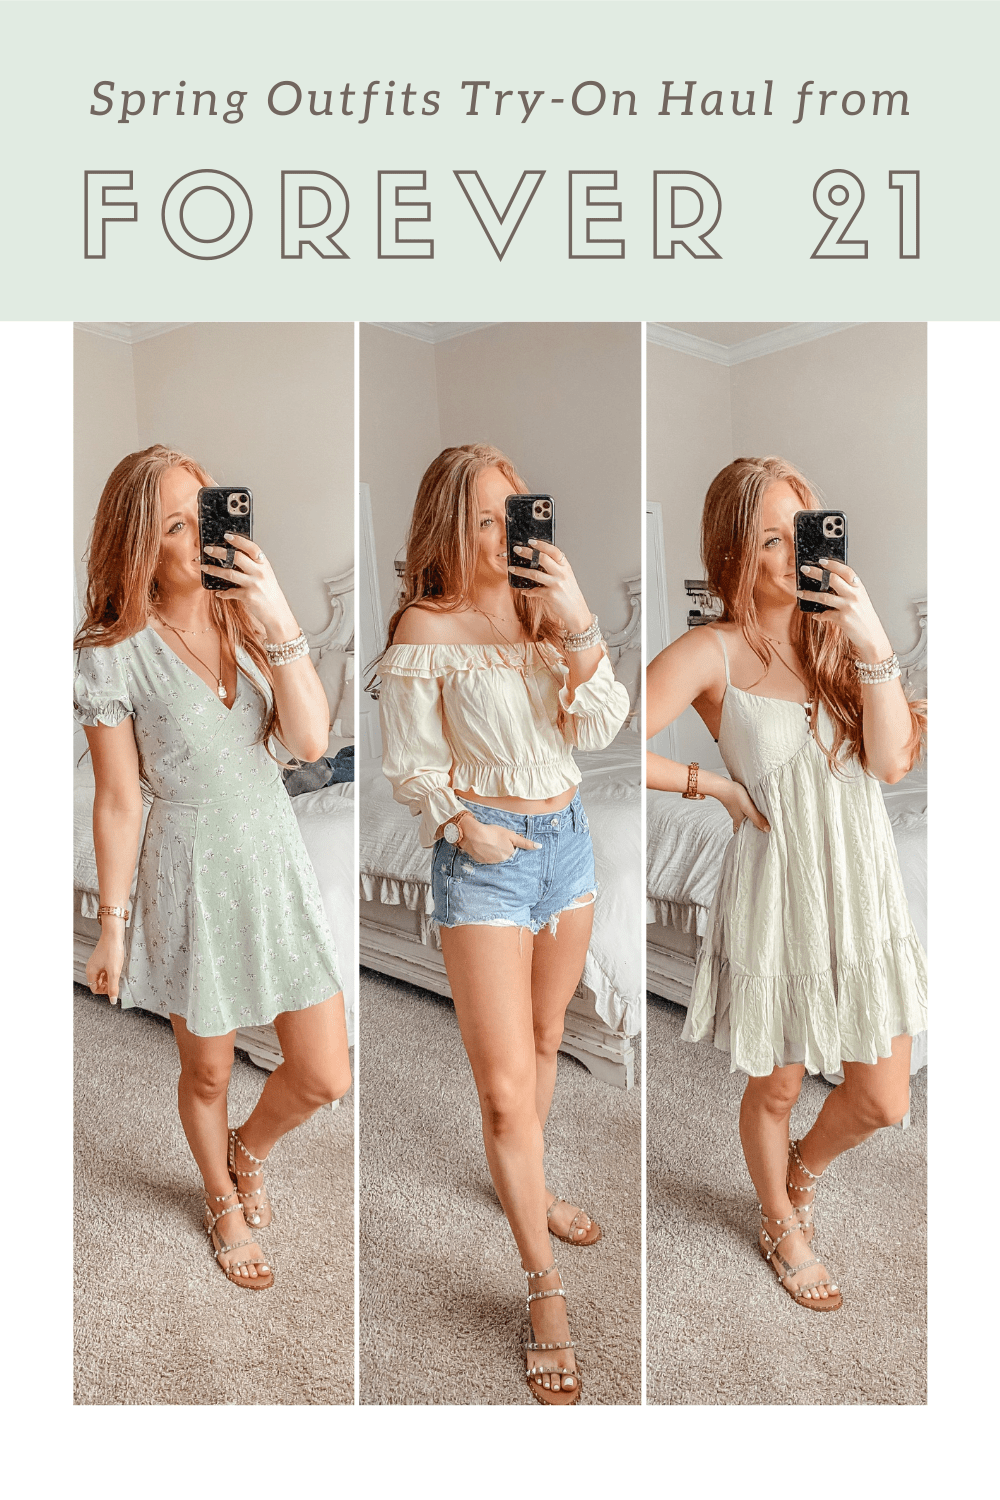 Spring Outfits Try-On Haul from Forever 21 Pinterest Graphic